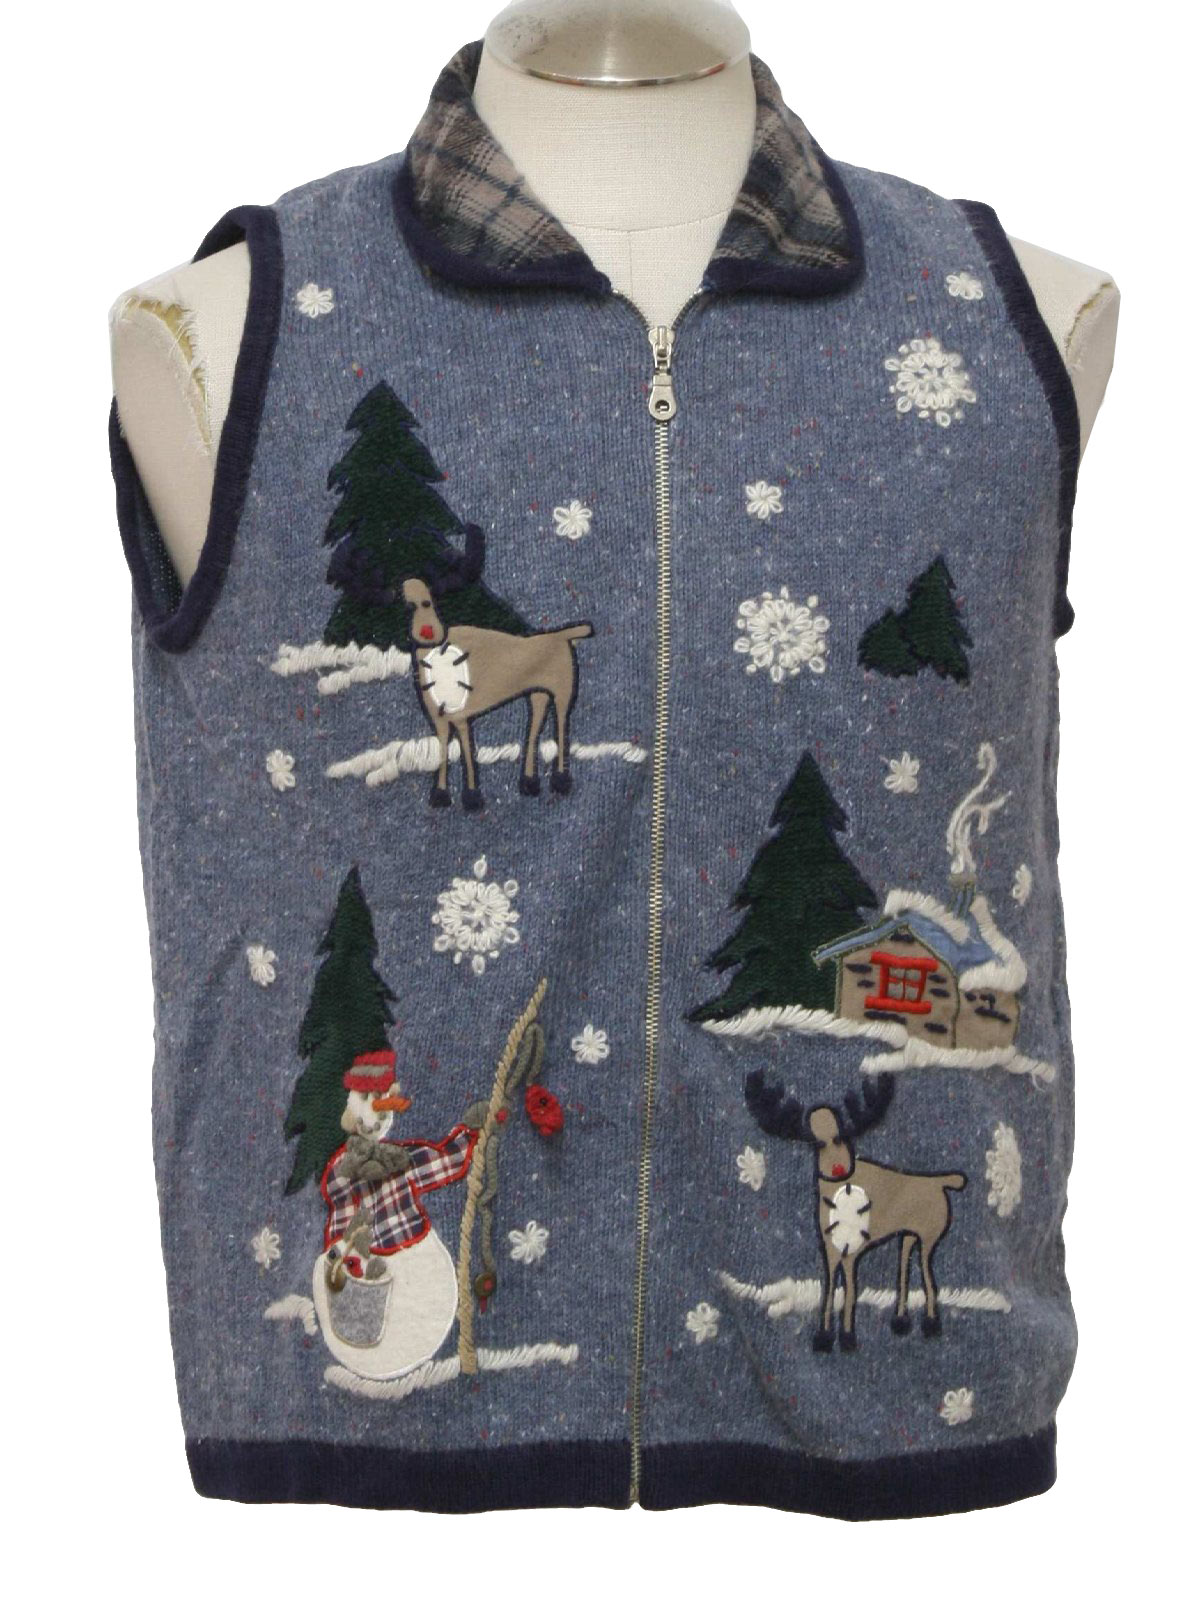 Ugly christmas sweater vest victoria jones unisex blue for Fishing christmas sweater